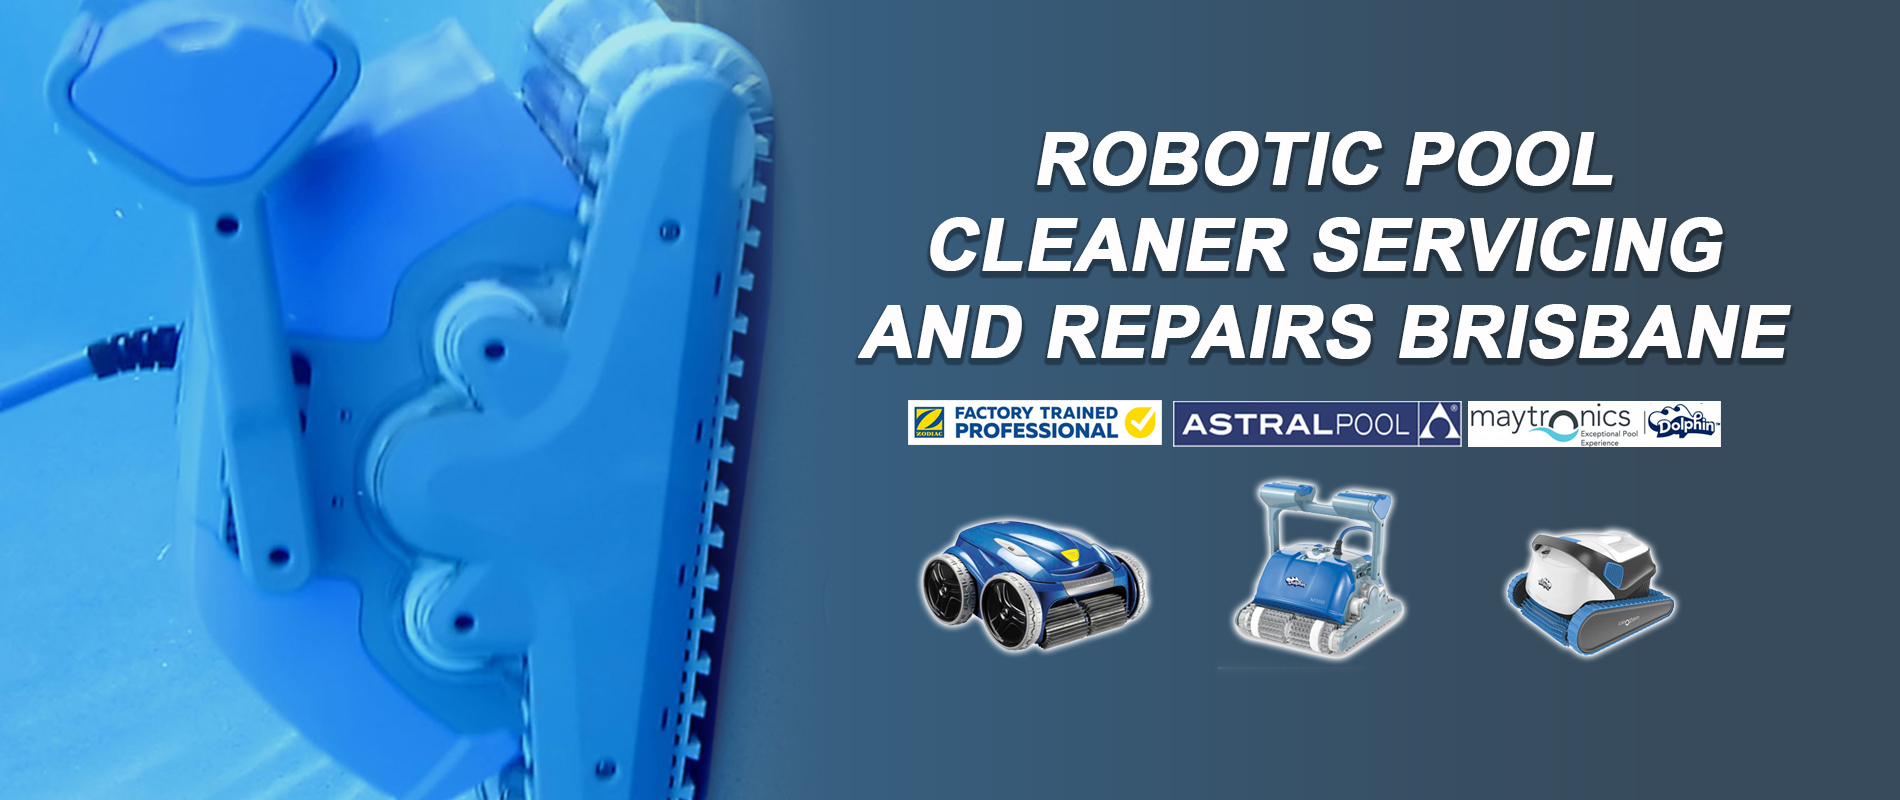 Robotic Pool Cleaner Service & Repairs